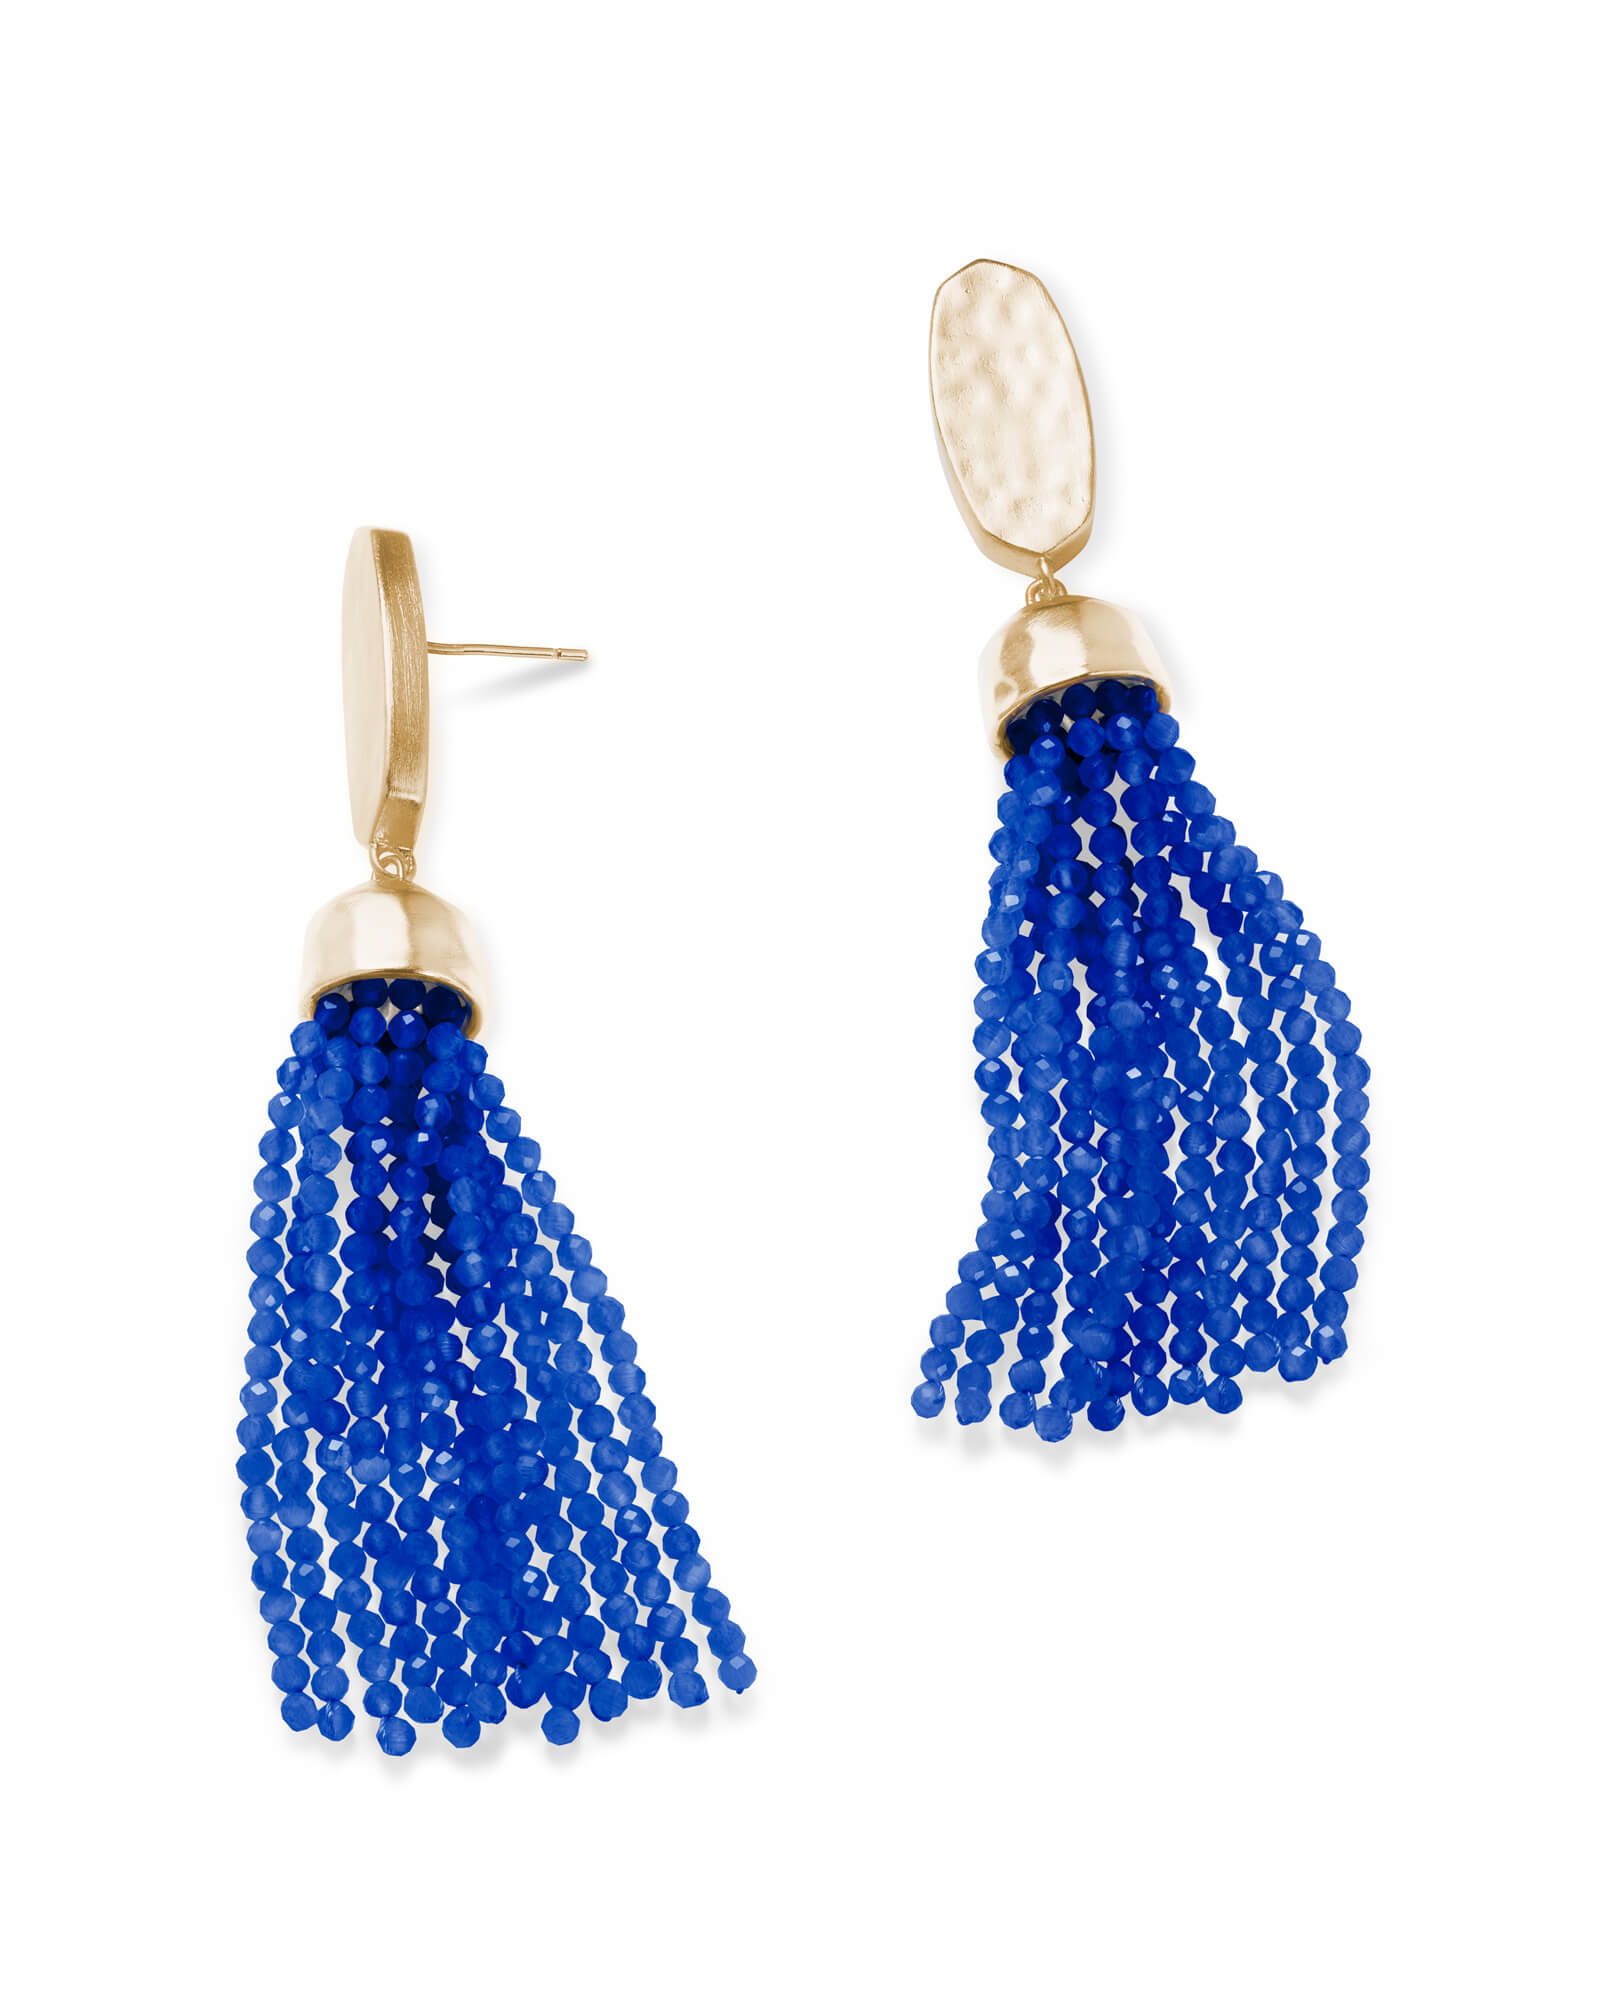 Marin Gold Statement Earrings in Cobalt Cats Eye